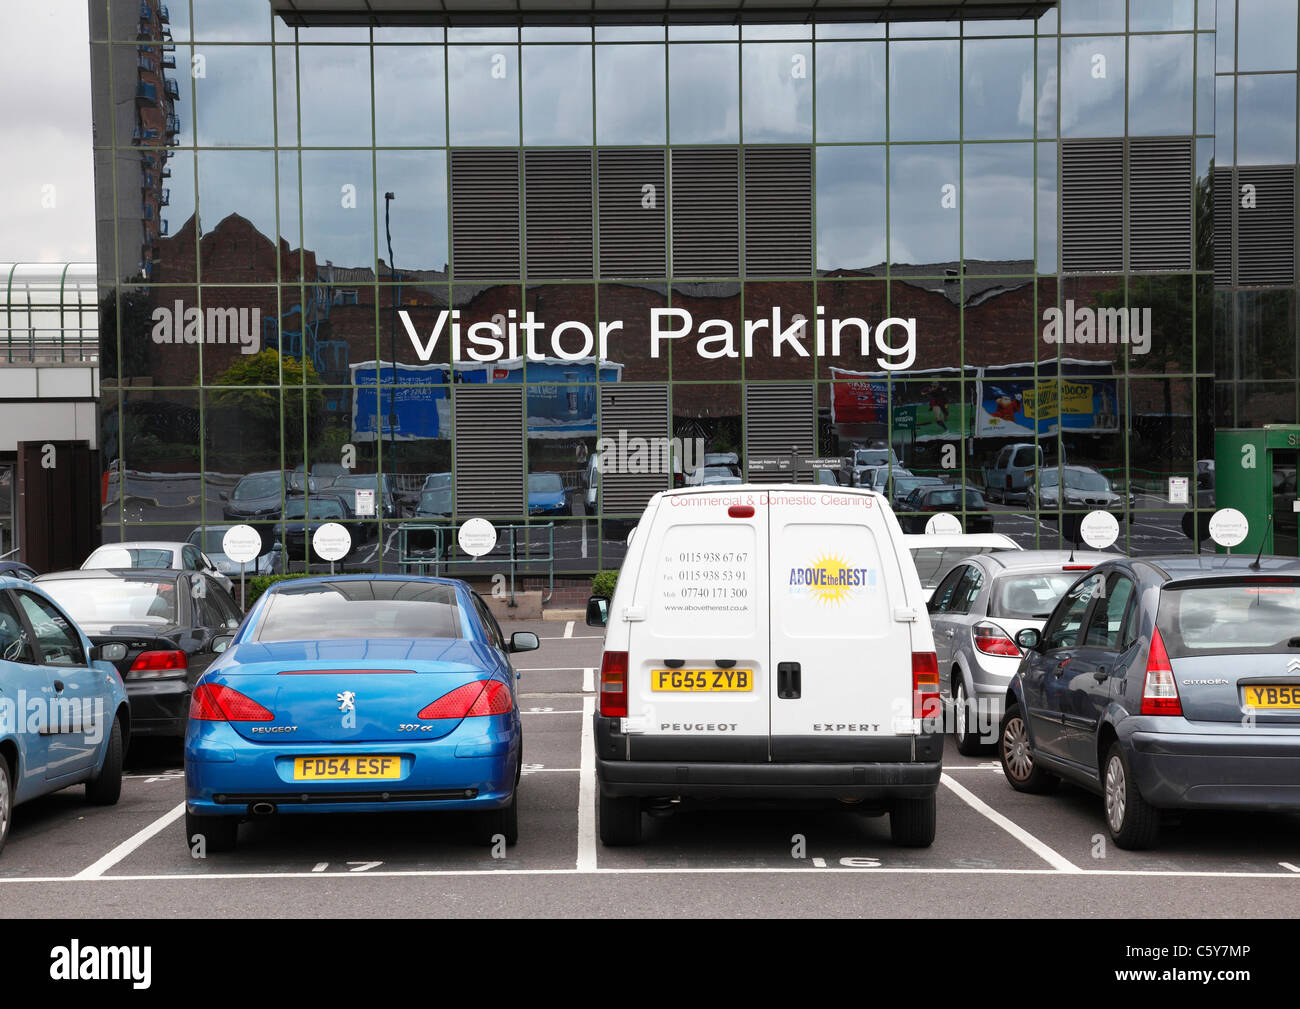 A car park at business premises in Nottingham, England, U.K. - Stock Image